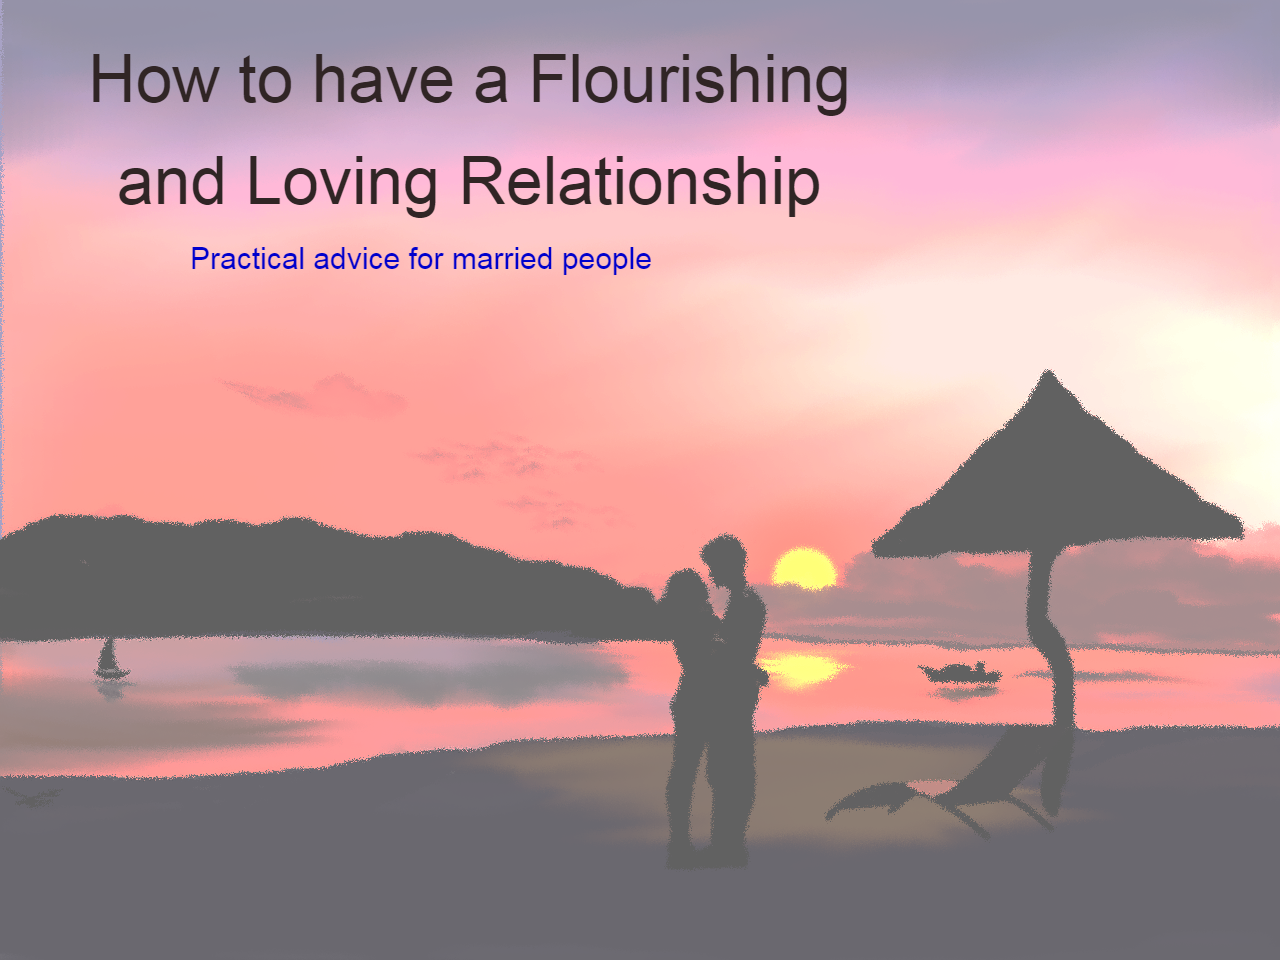 How to Have a Flourishing and Loving Relationship